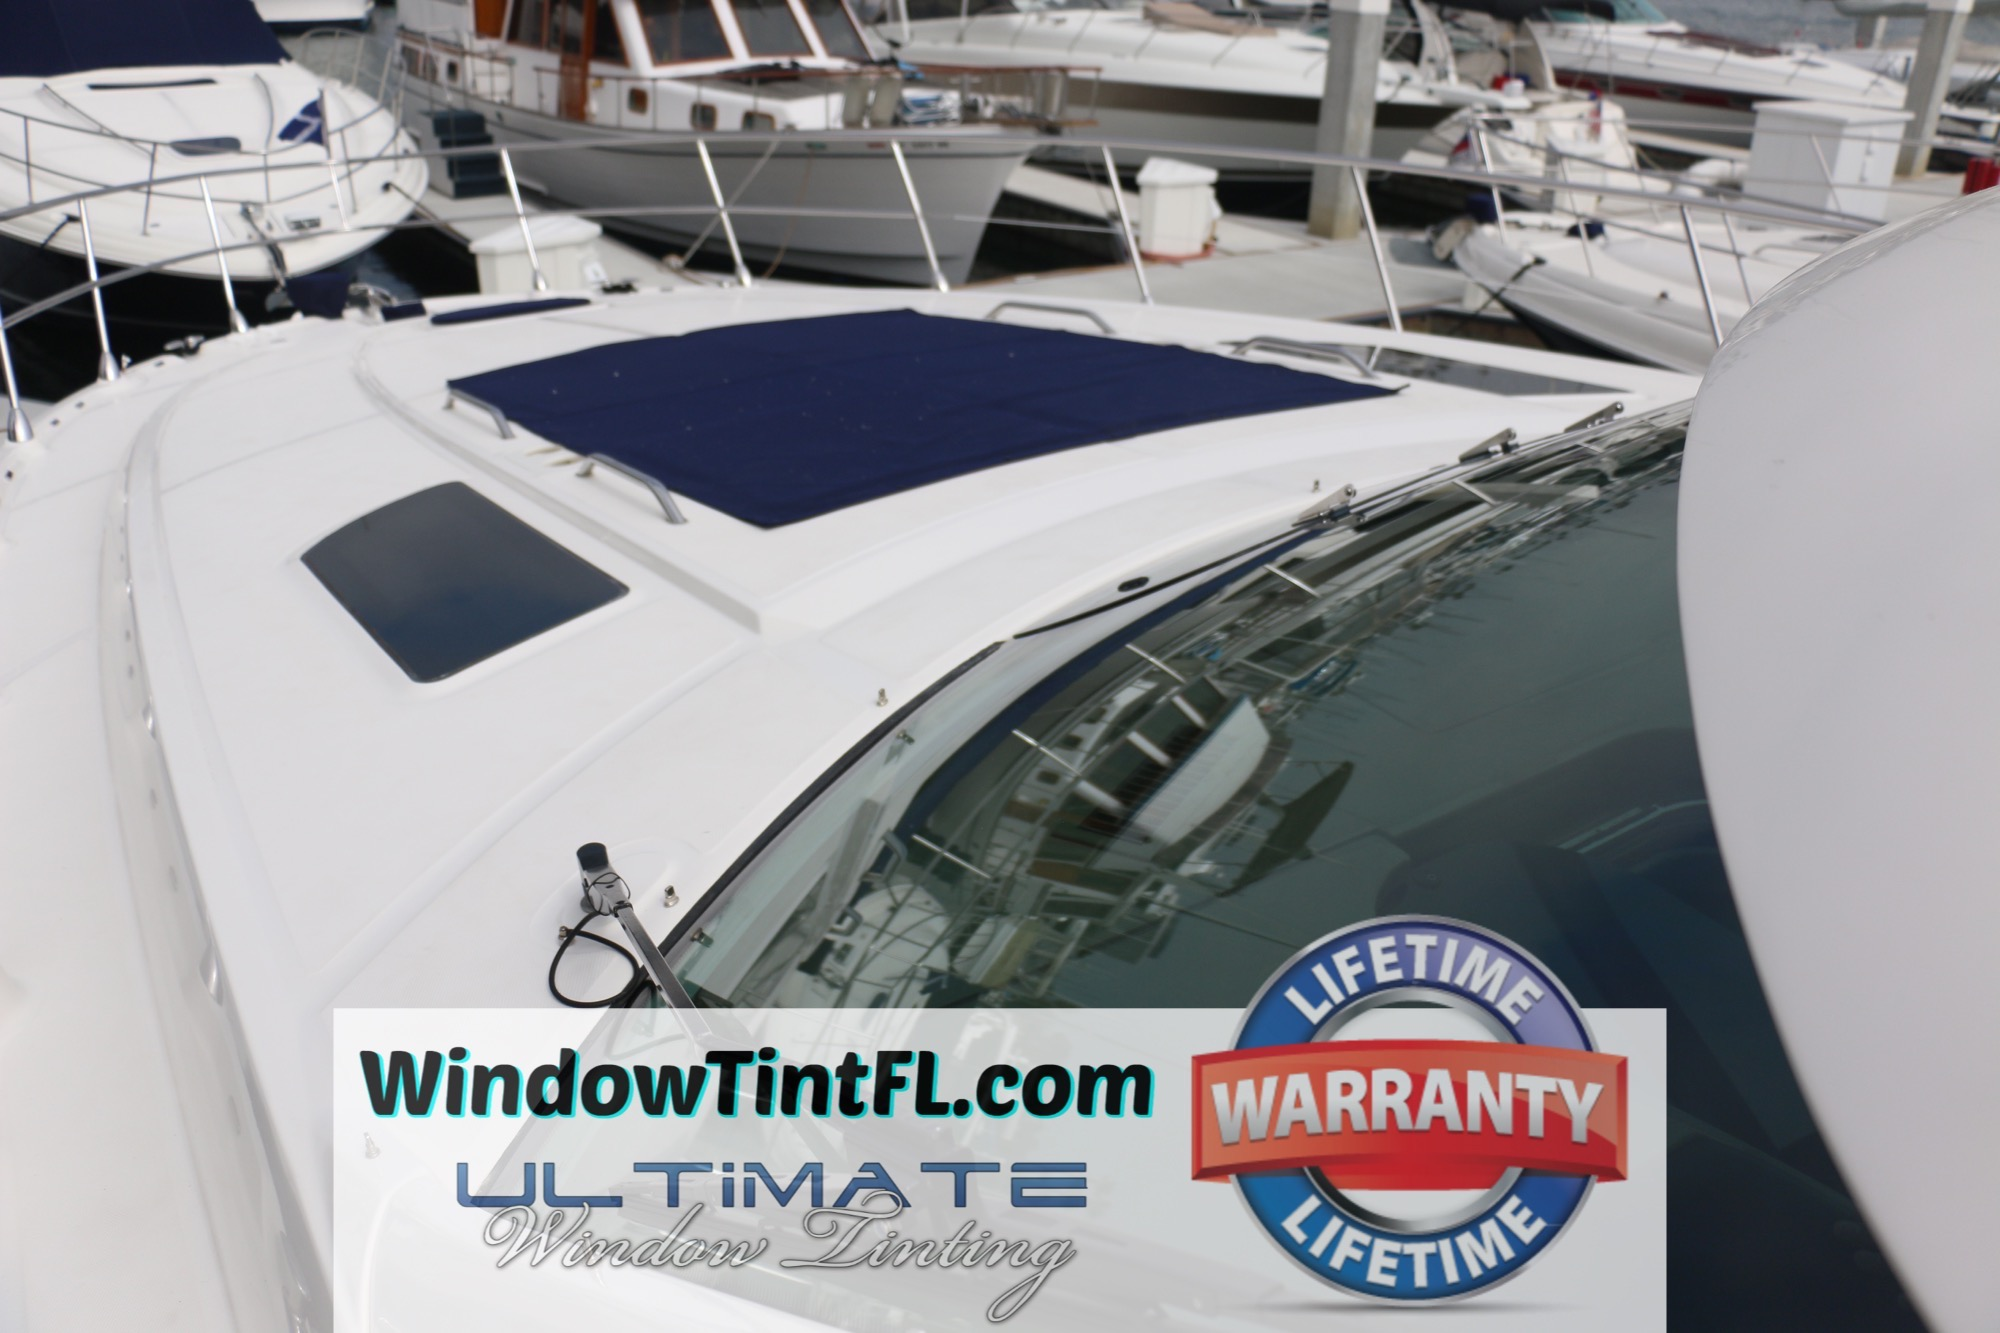 Boat Window Tint Sarasota Florida Marine Solar Window Film